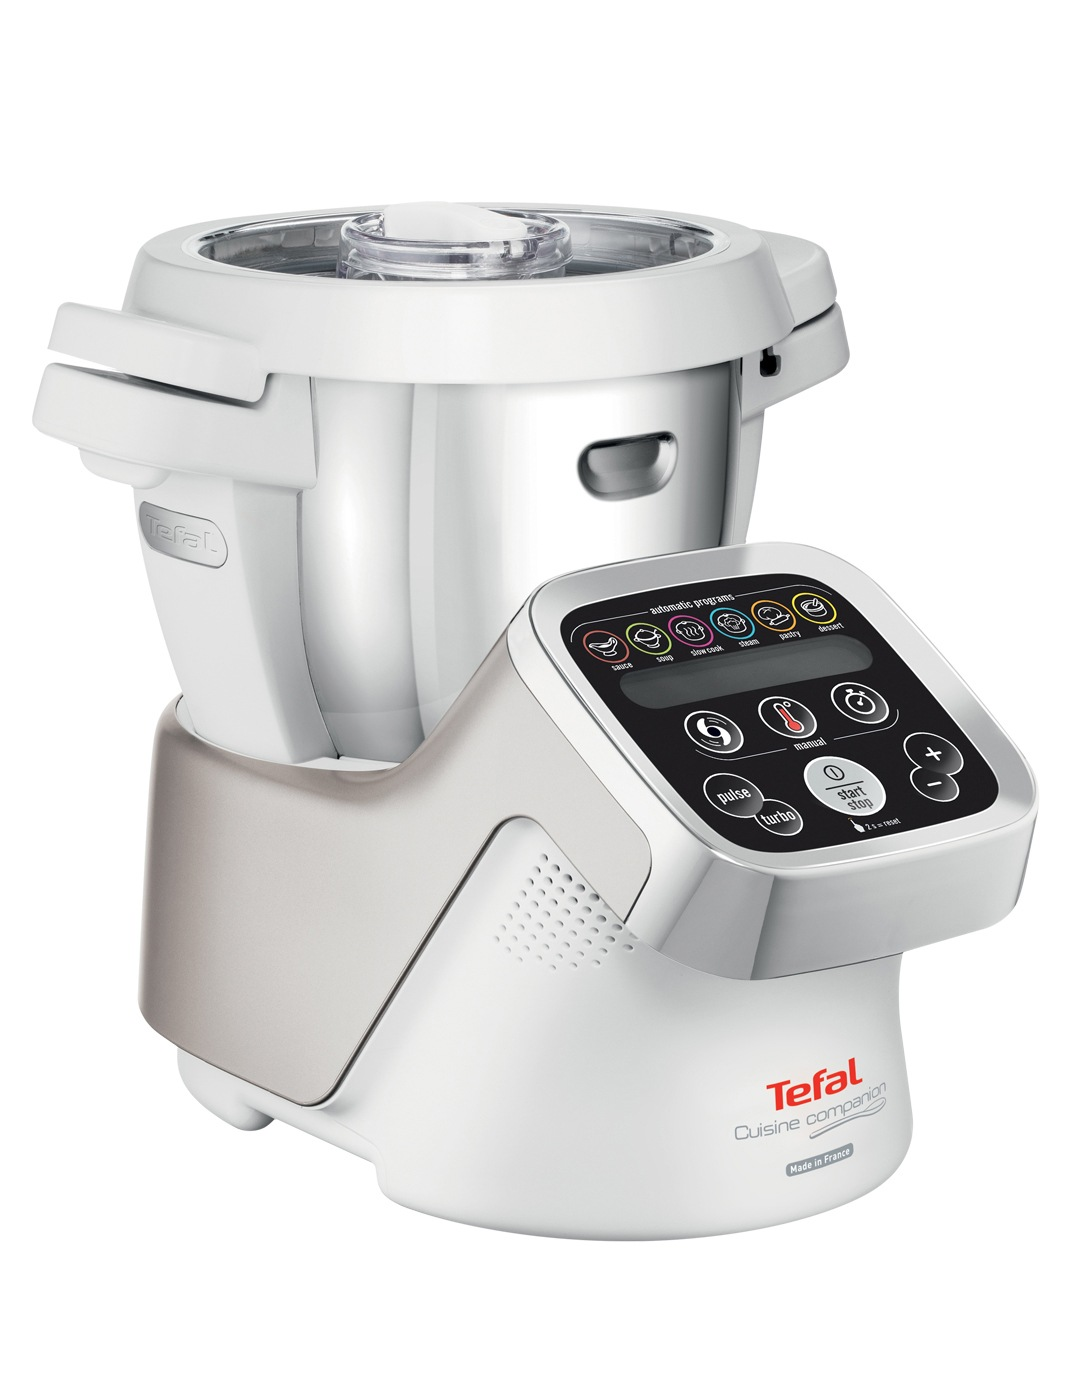 Tefal | Cuisine Companion The All In One Kitchen Wonder Machine:  White/Silver | Myer Online